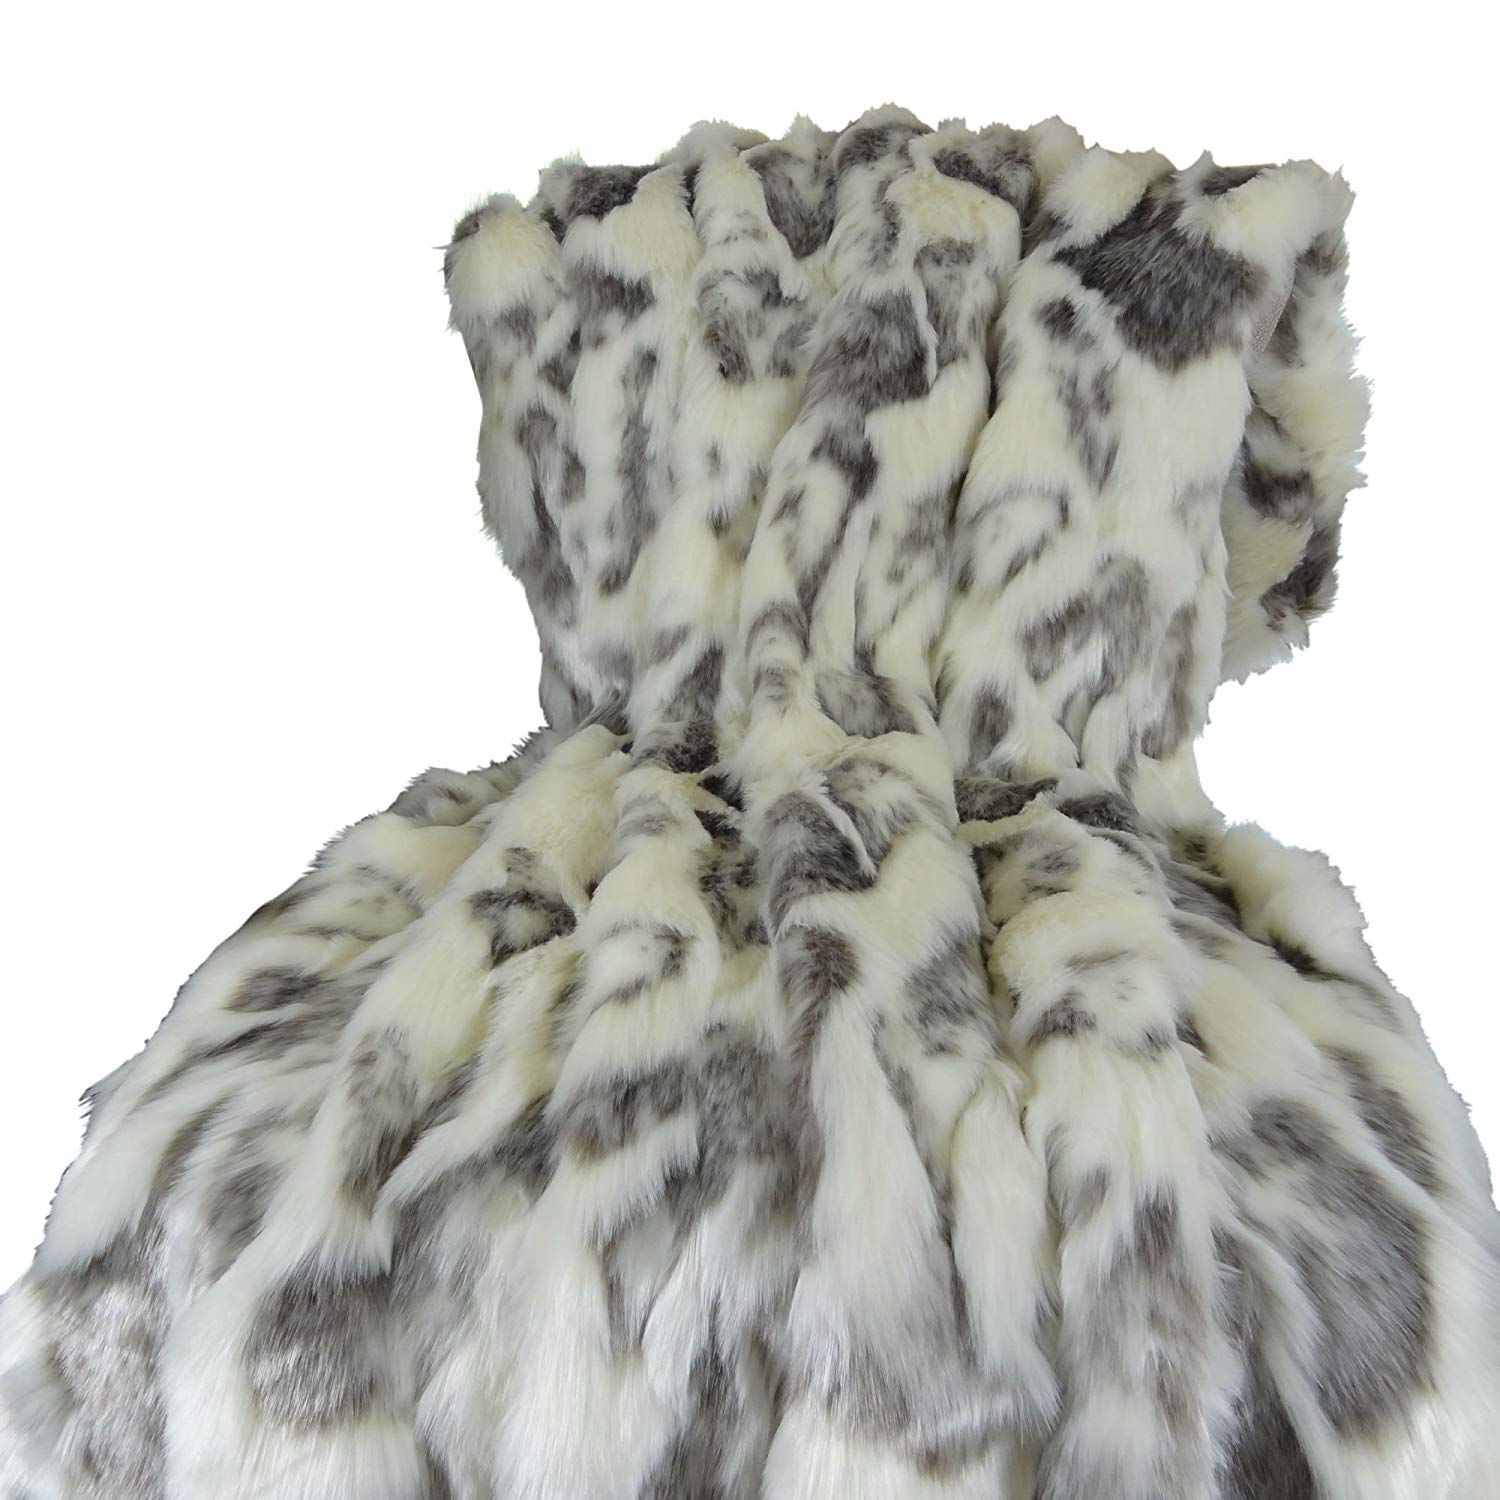 Thomas Collection Ivory Faux Fur Throw Blanket & Bedspread - Rabbit Faux Fur - Ivory Gray Luxury Faux Fur - Fur Throw Blanket - Luxury Soft Faux Fur, Made in USA, 16428